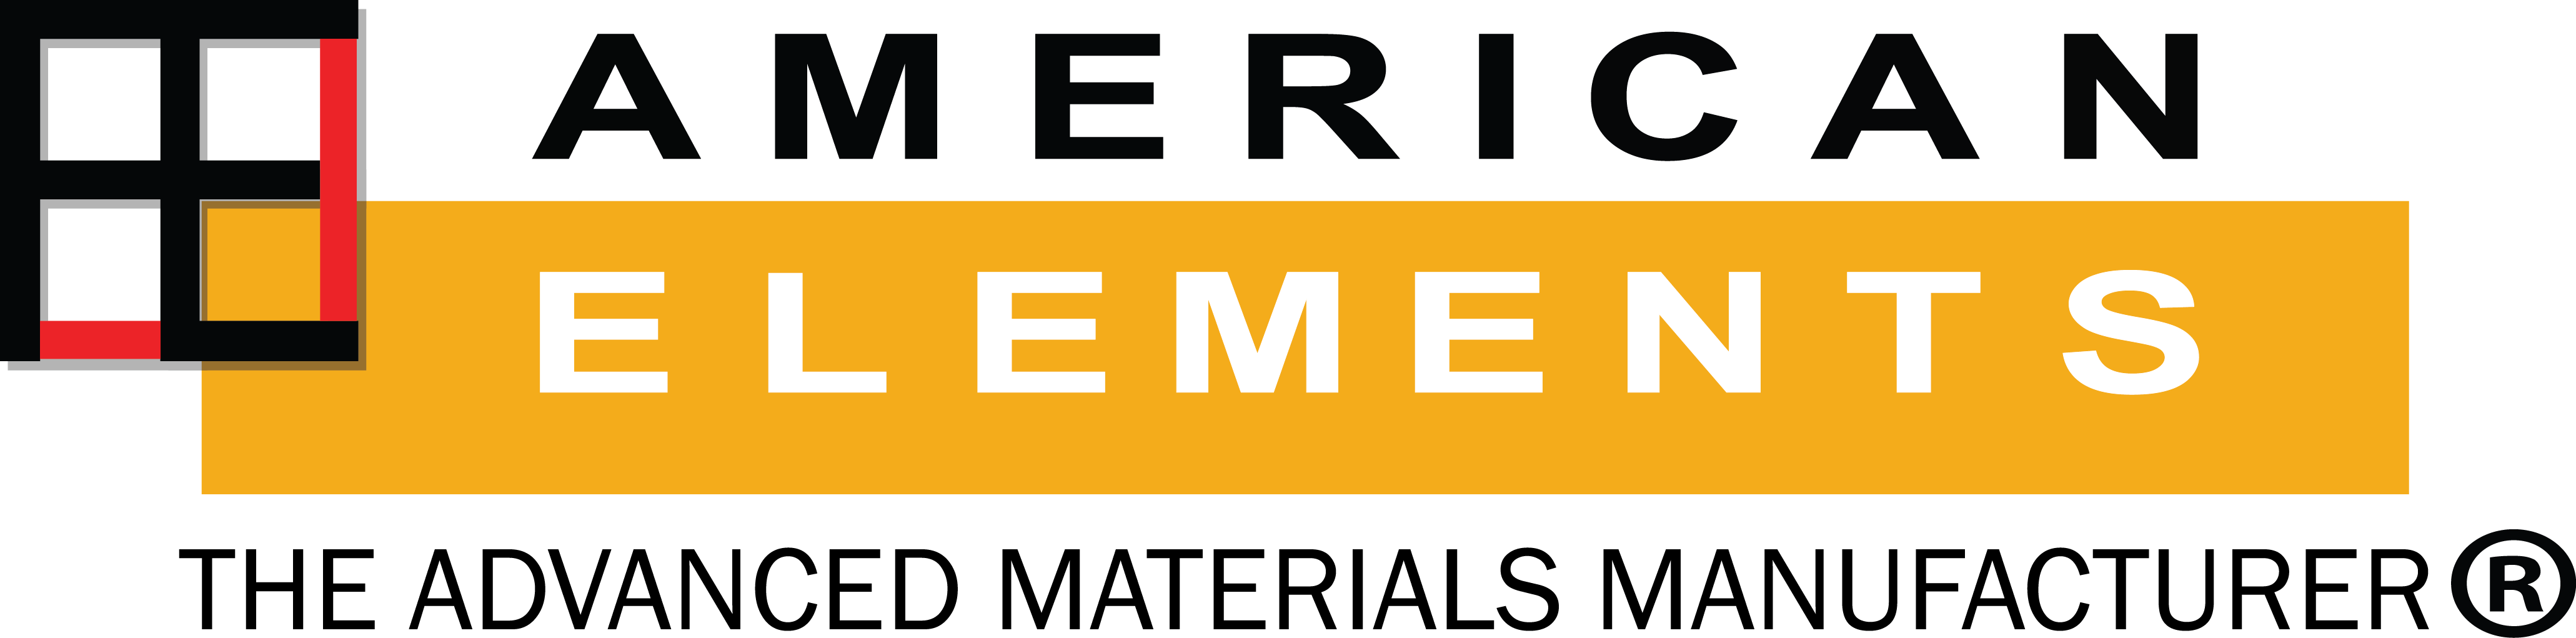 1491488256_AmericanElements-Logo-Display-Sponsorship-EGF2017.png